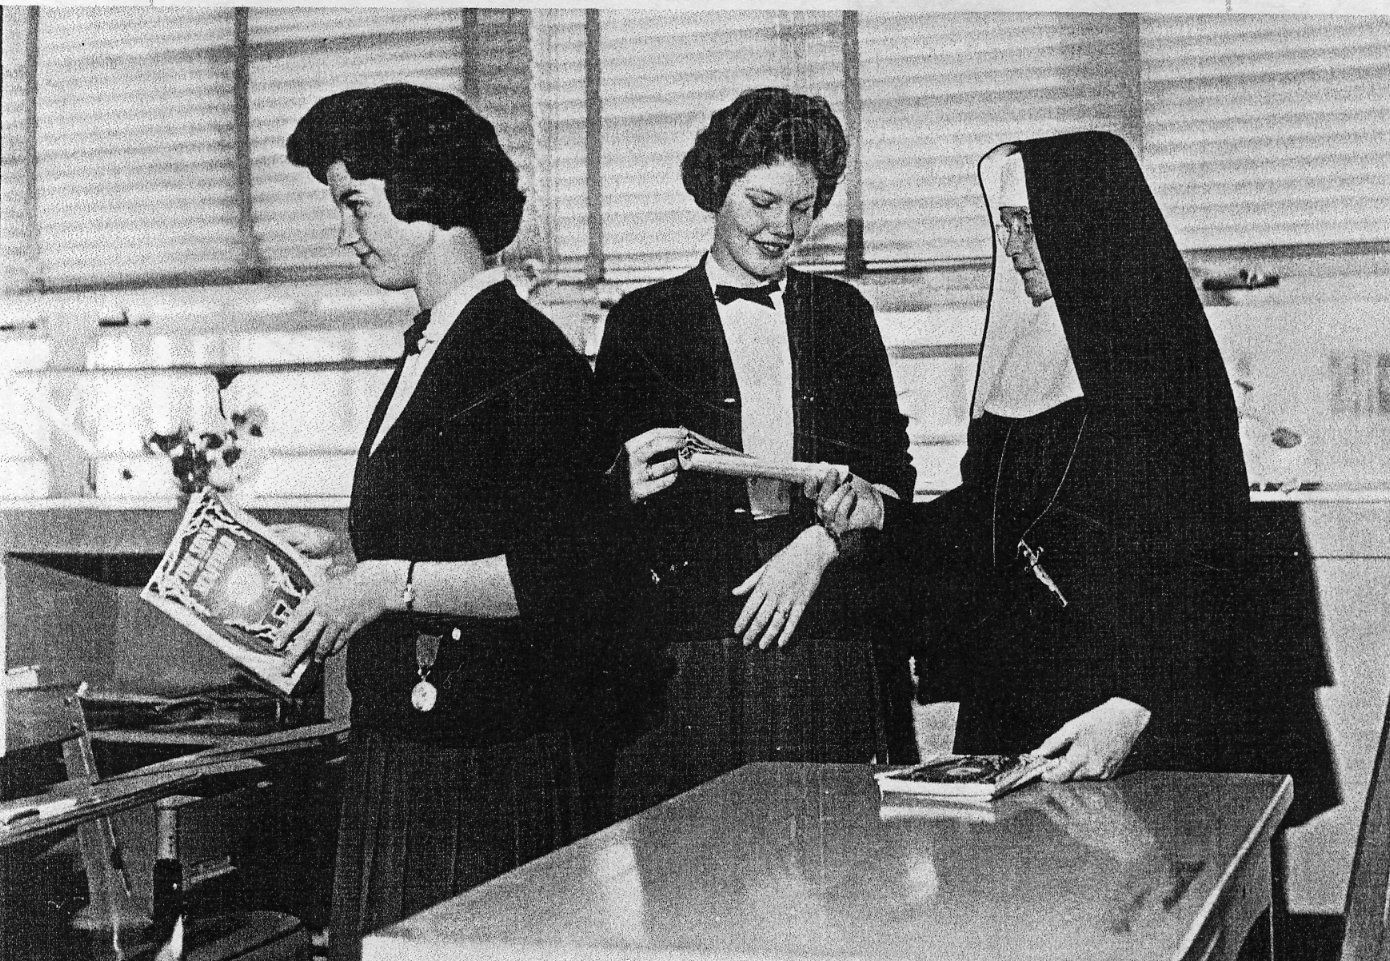 In 1951, Incarnate Word High School was built and blessed on the western edge of the Congregation's property in San Antonio. Sister and students at Incarnate Word High School.